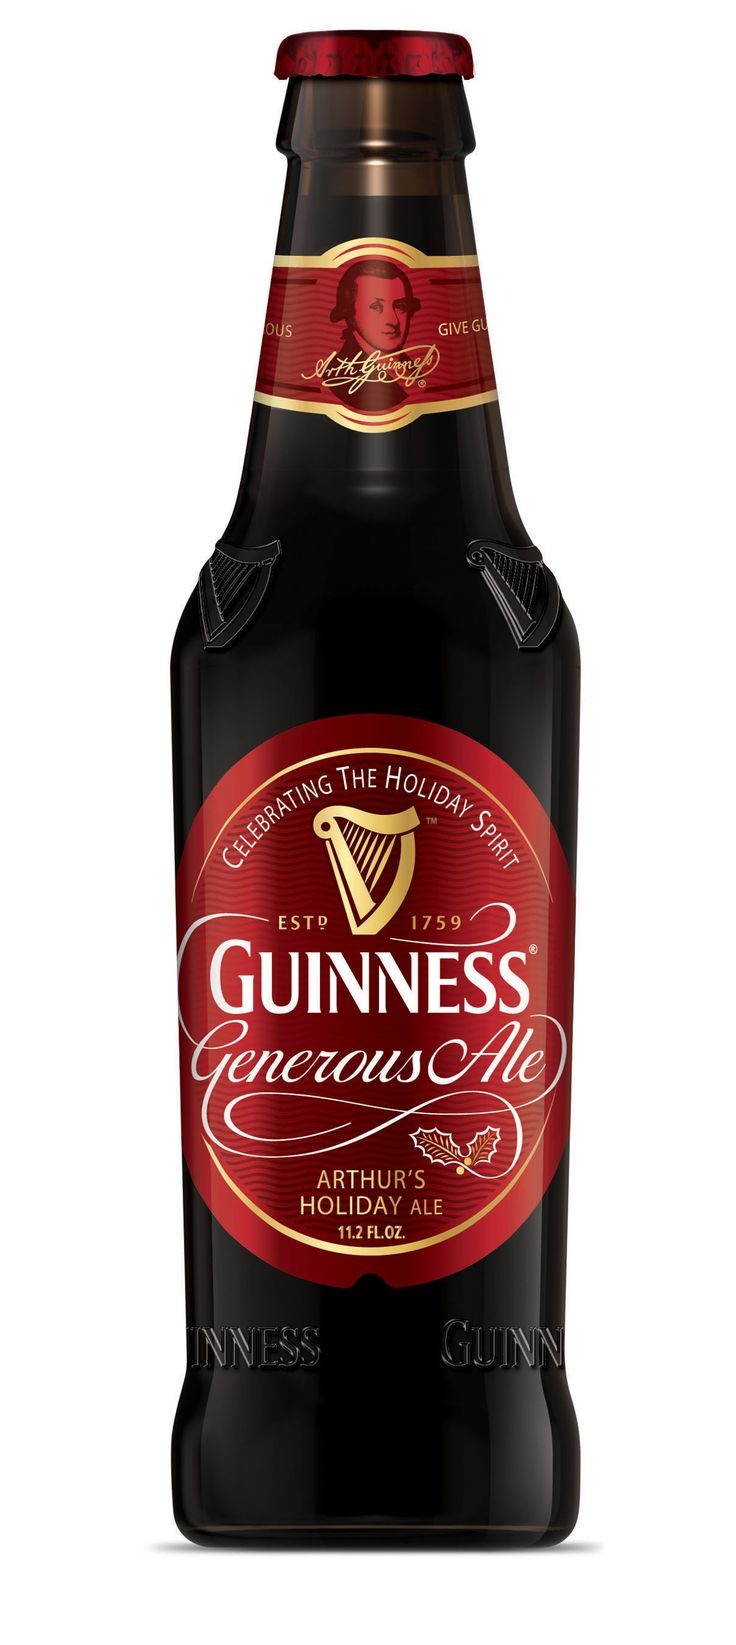 'Tis the Season to Give With New GUINNESS Generous Ale  #pintowinGifts & @giftsdotcom